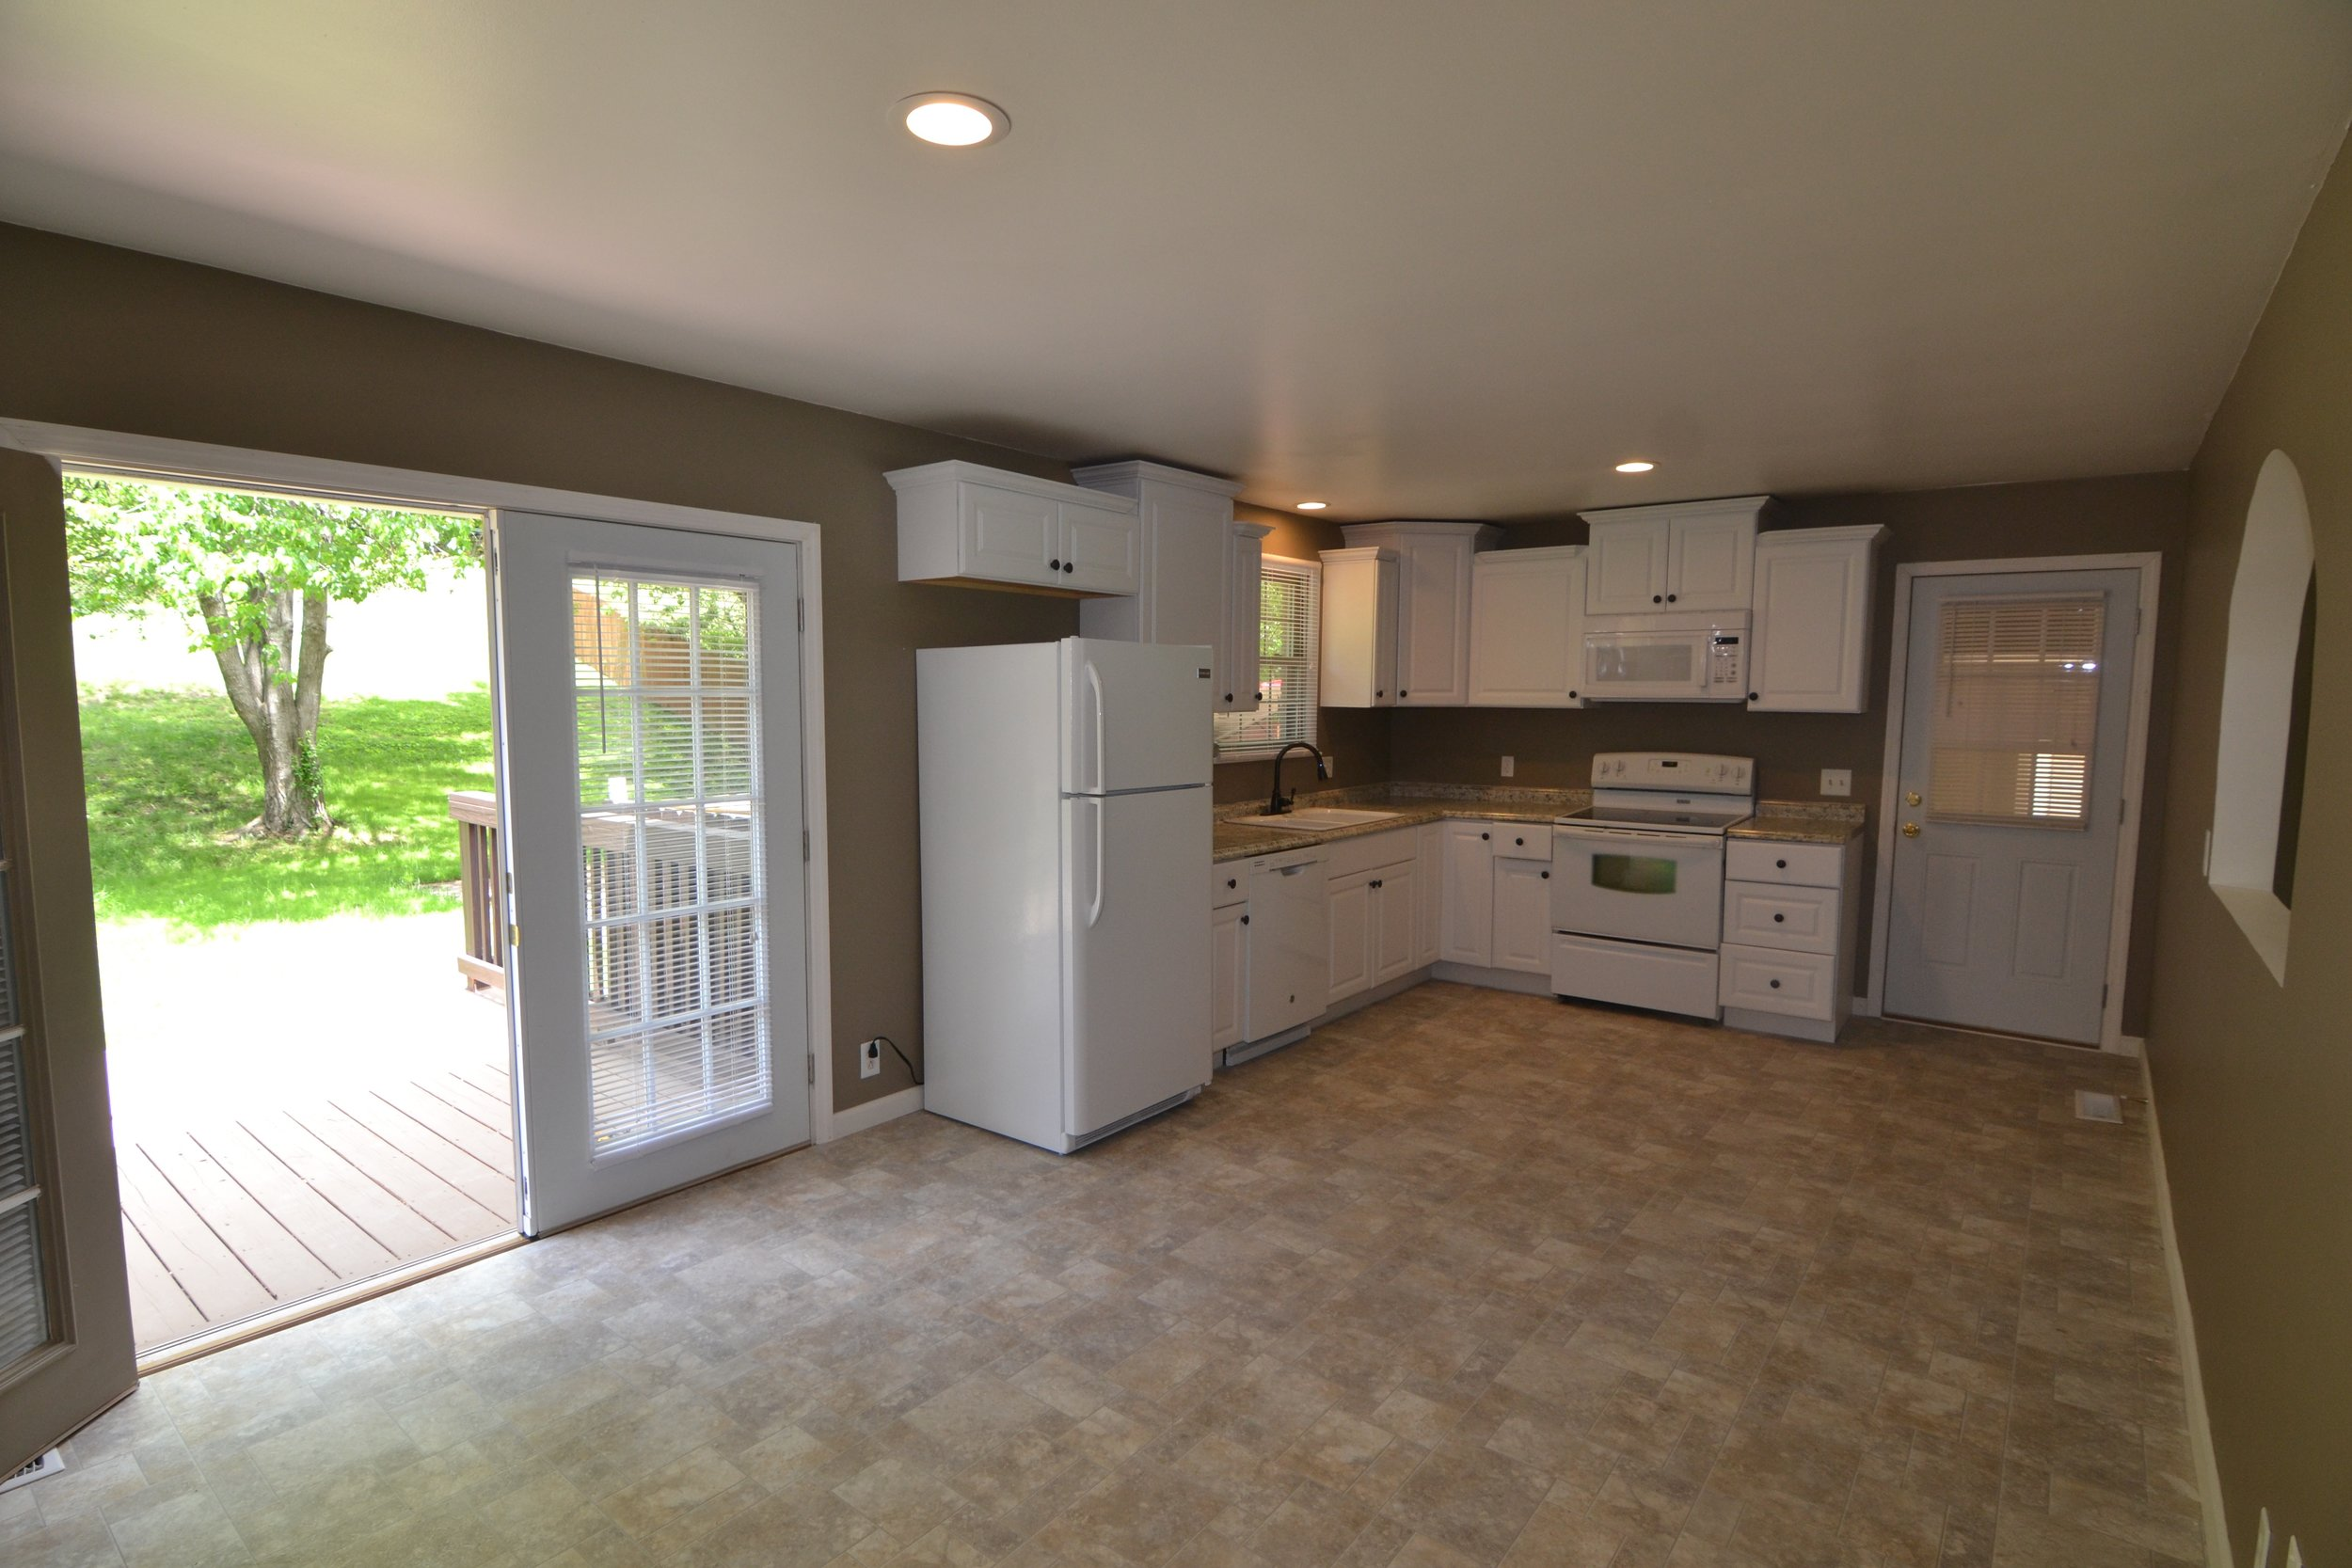 Spacious kitchen with New double french doors leading to 10x30 ft Deck overlooking beautiful Landscaped back yard with Privacy fence